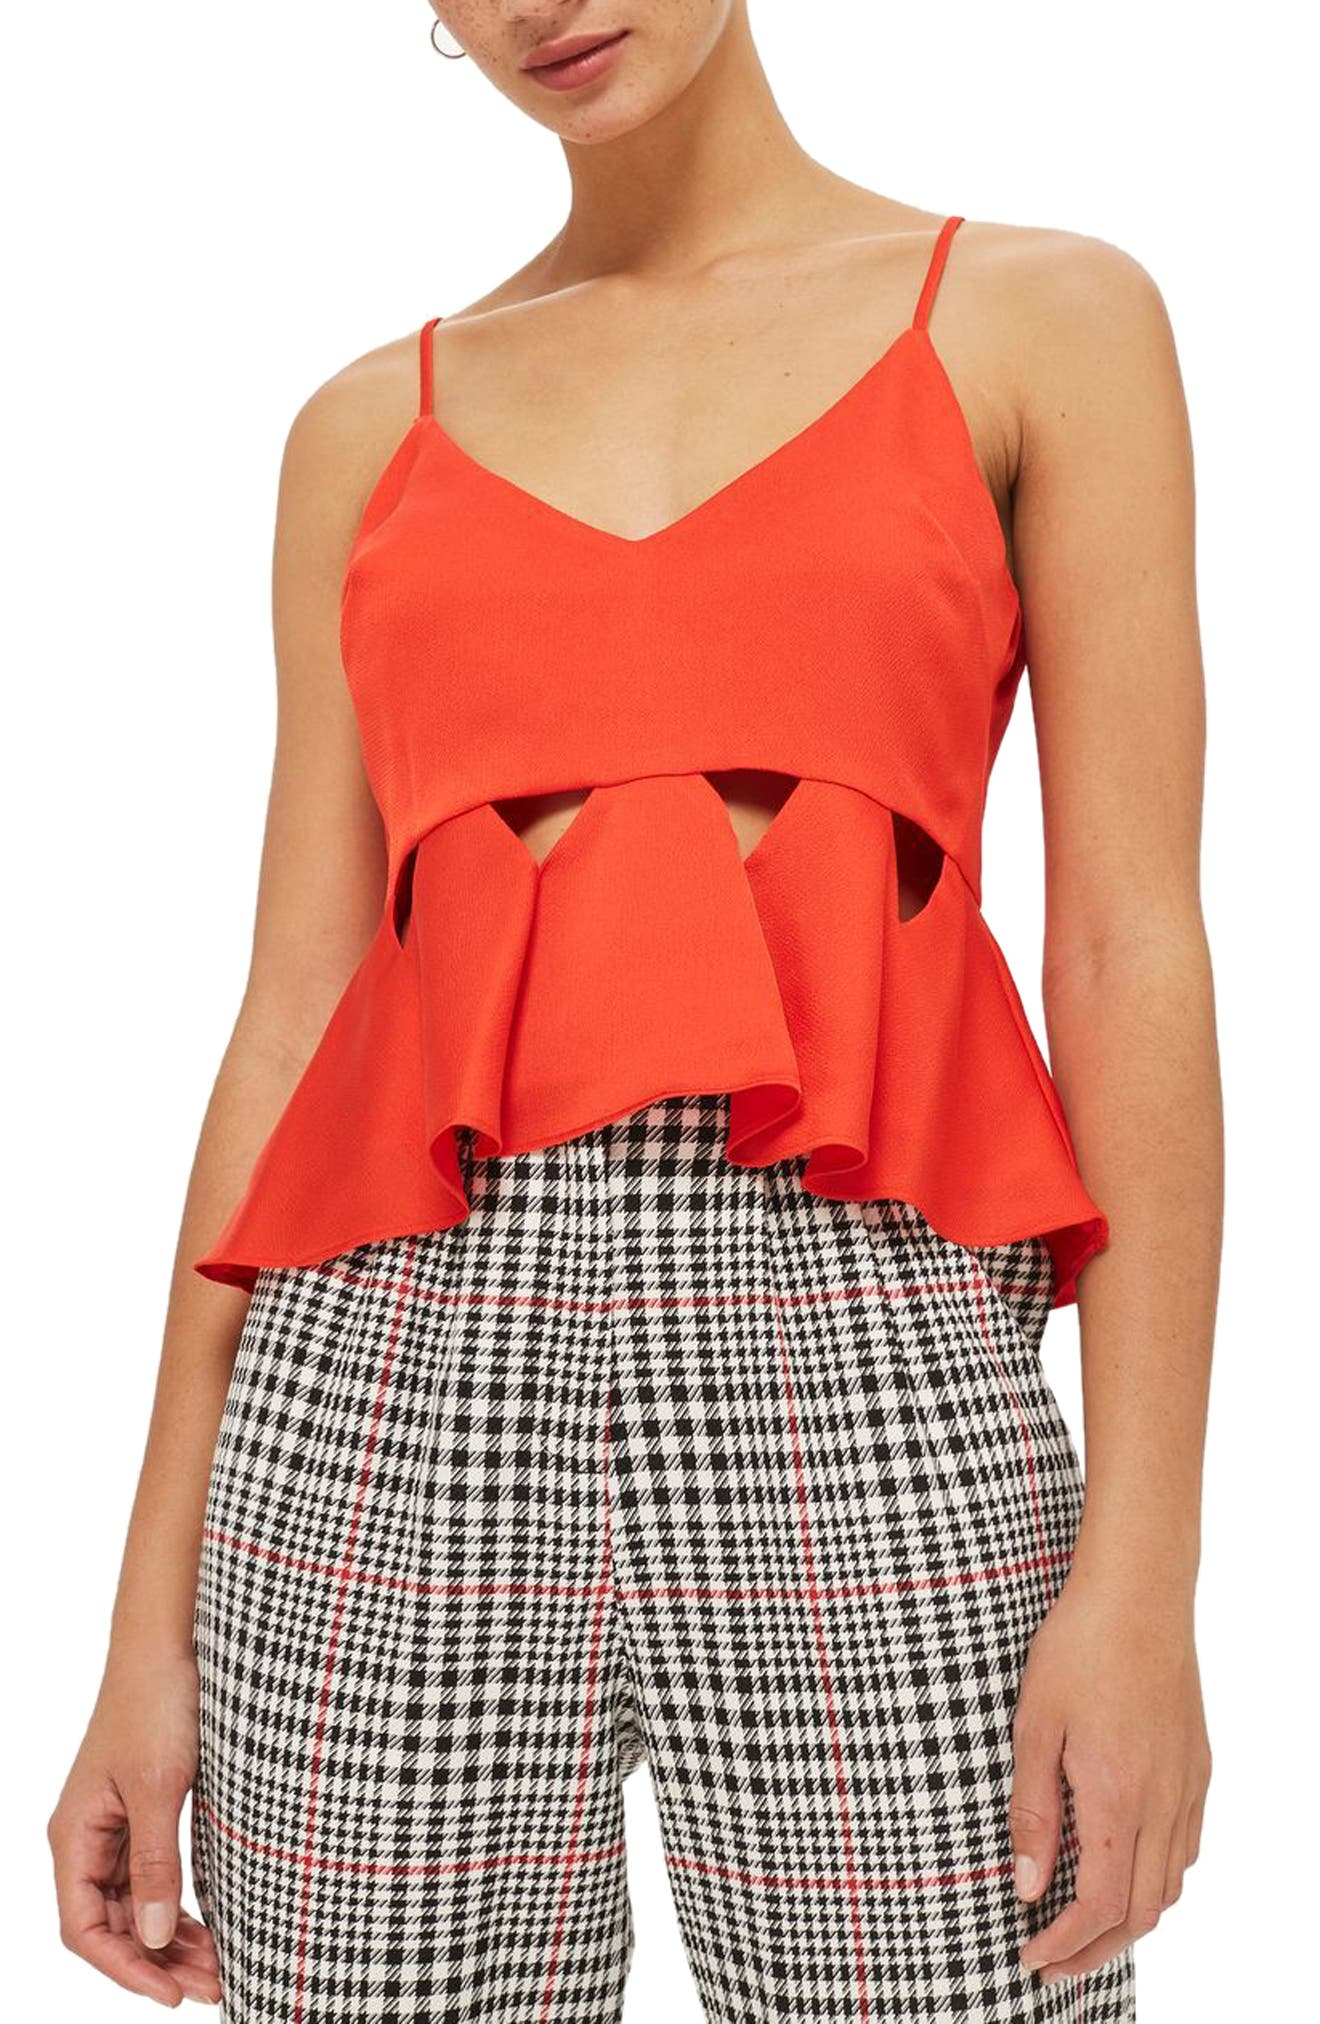 Alternate Image 1 Selected - Topshop Cutout Satin Camisole Top